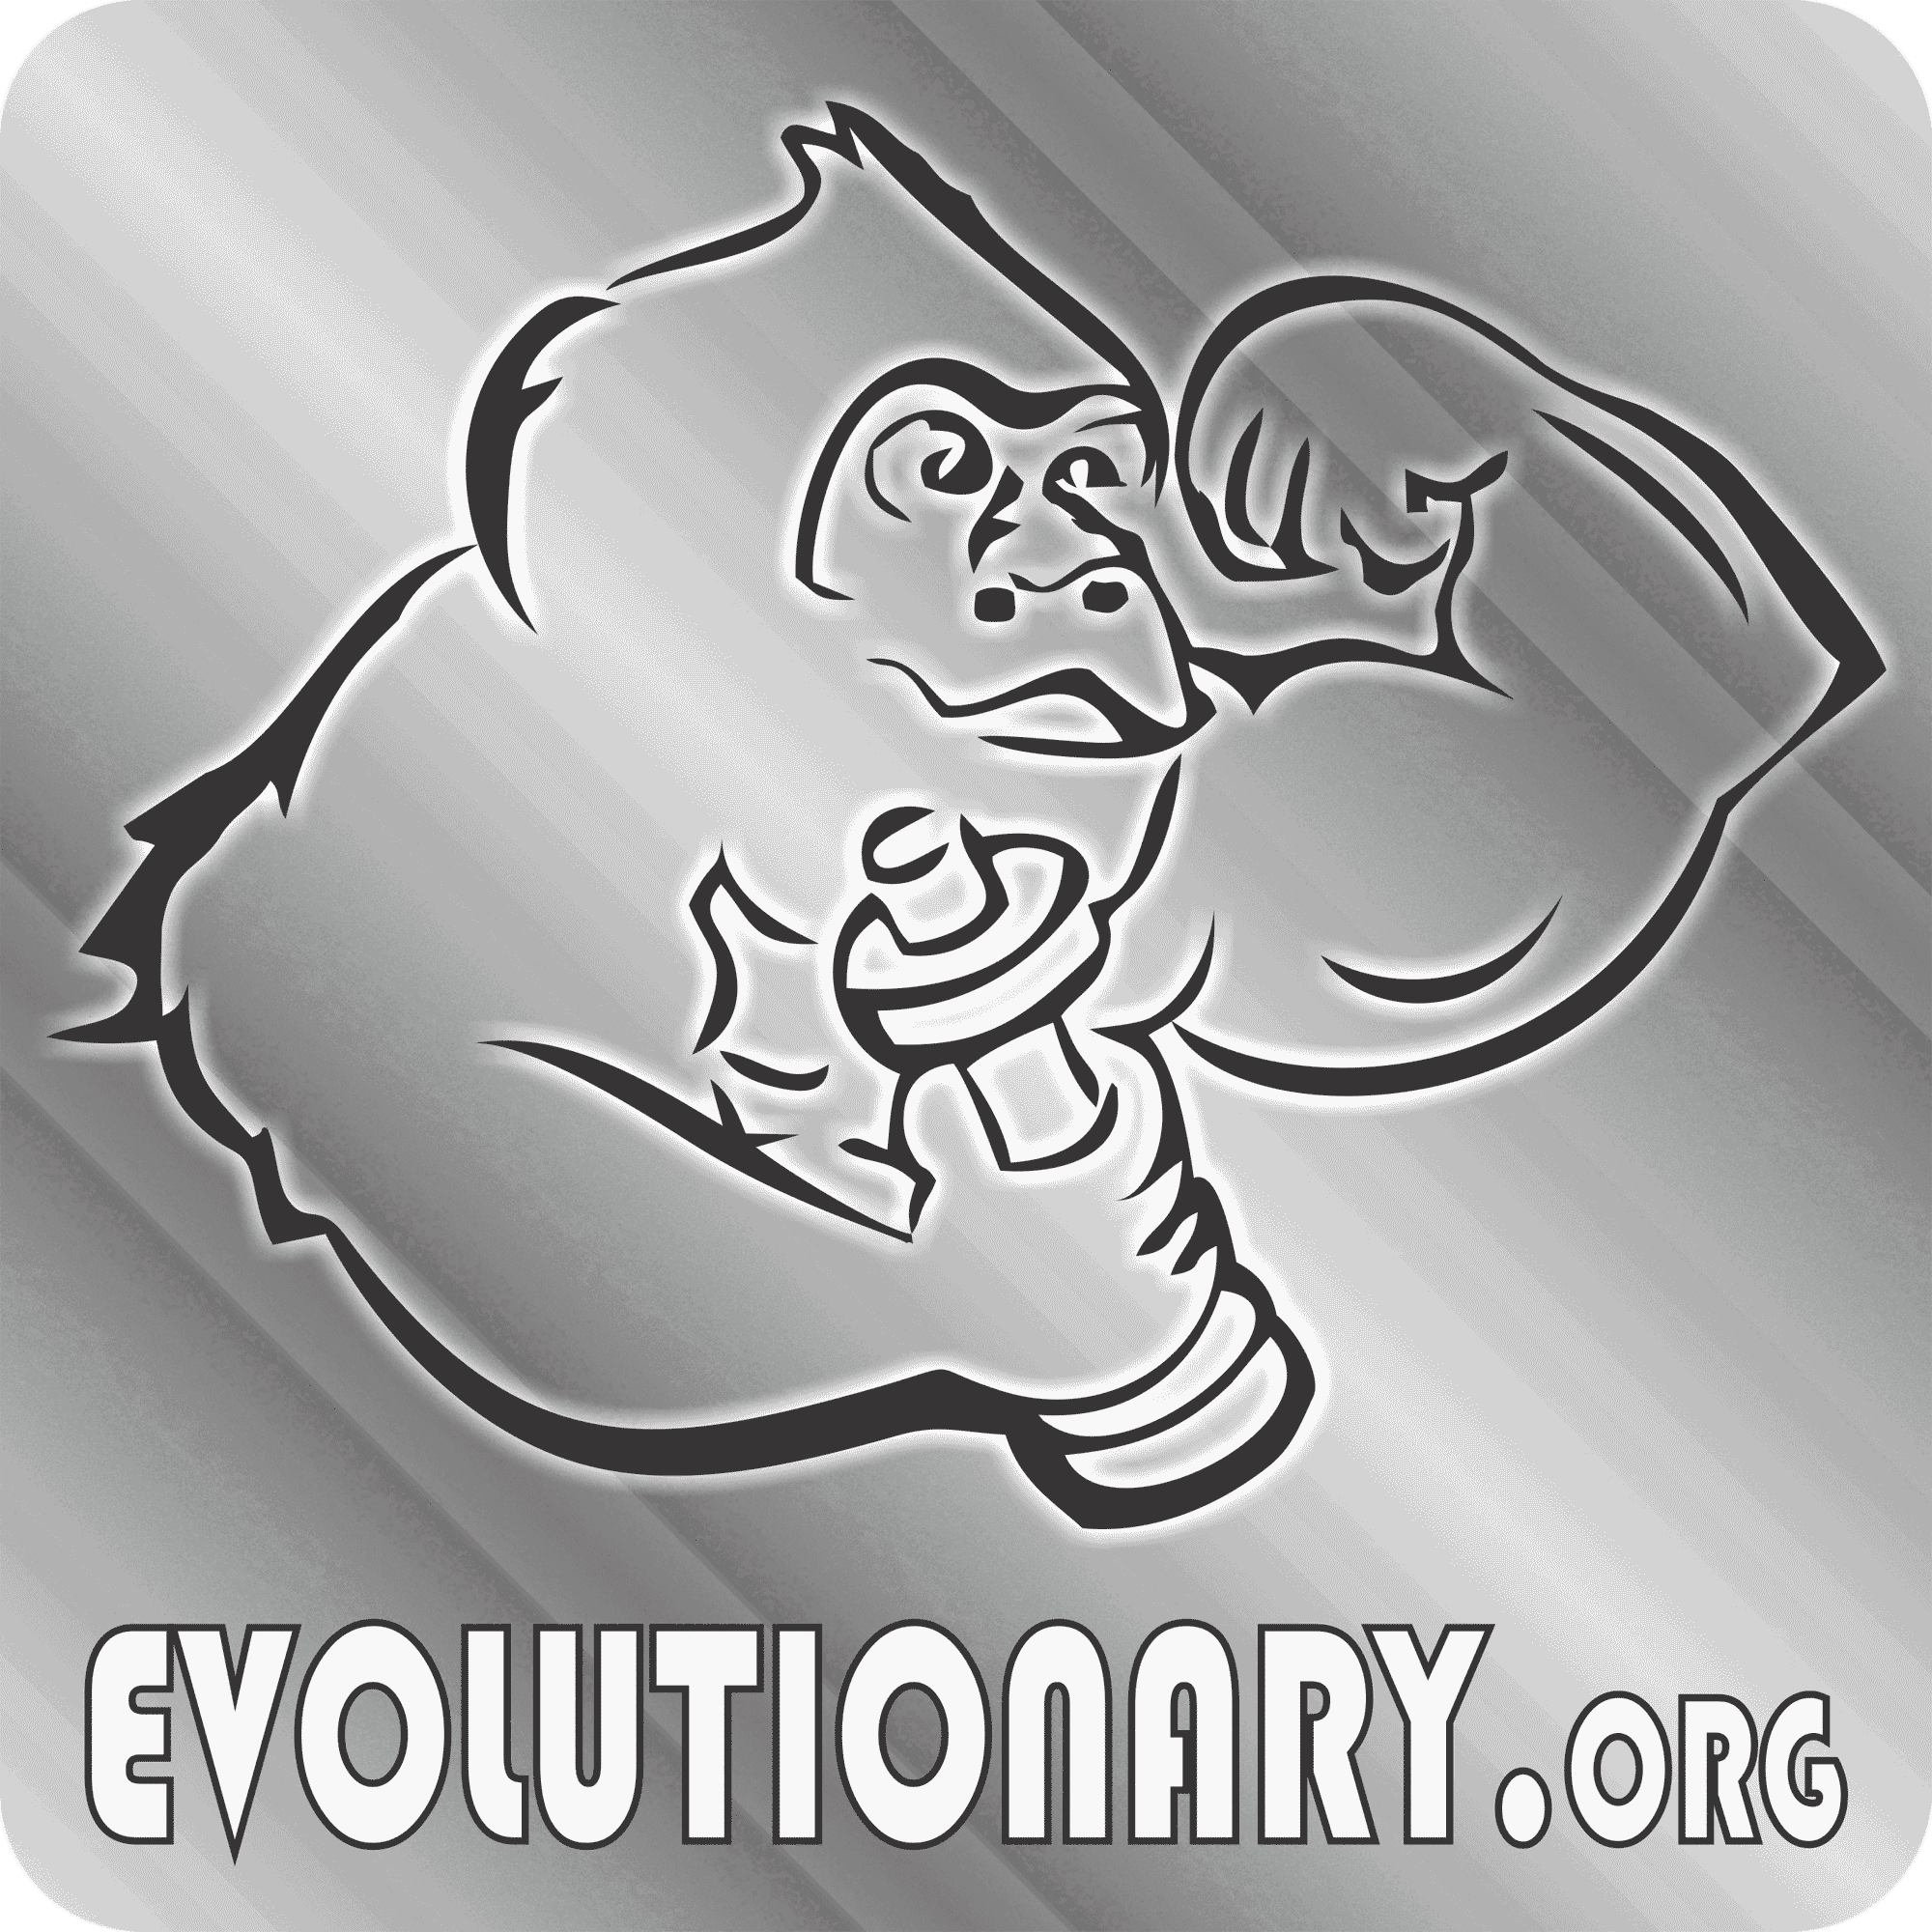 Evolutionary Radio